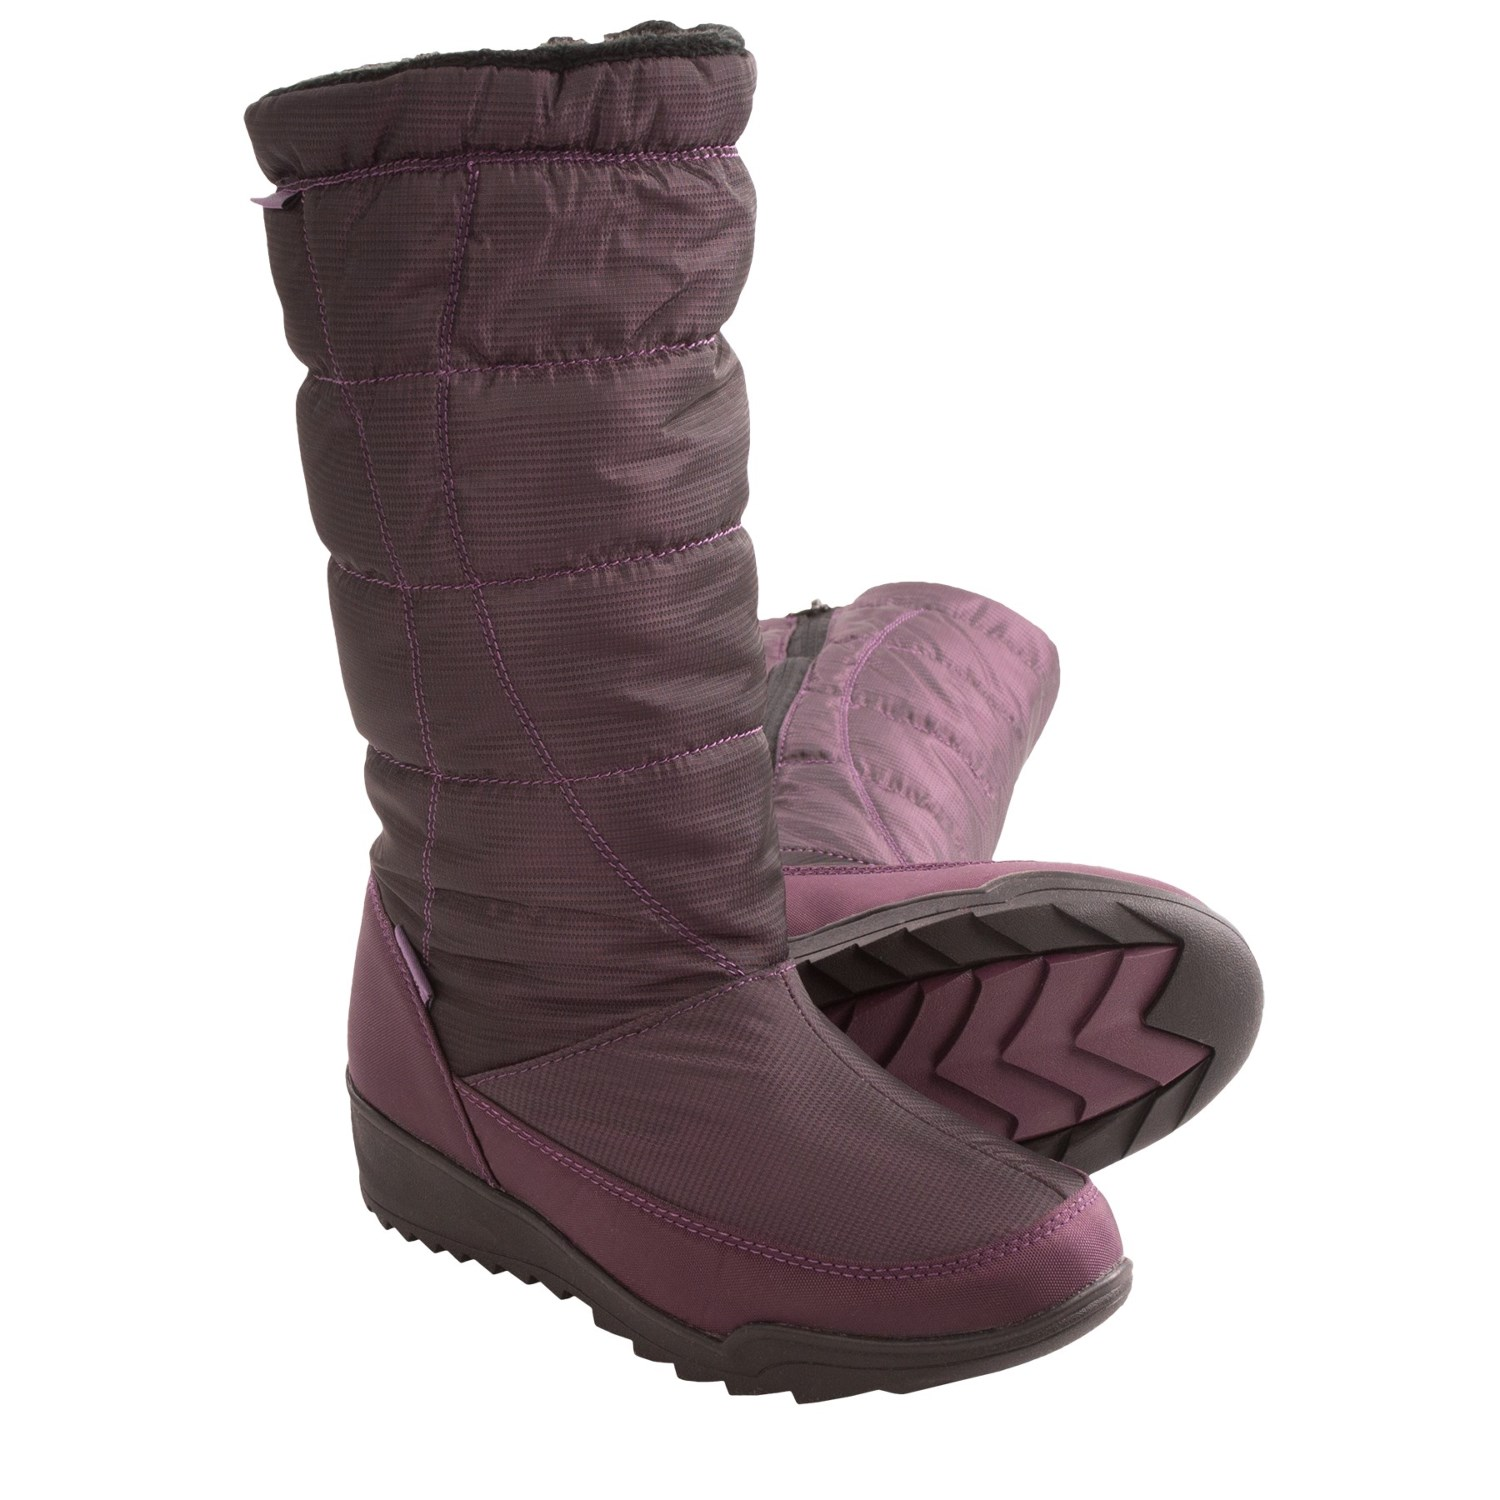 Creative  Snow Ridge Boots  292279 Winter Amp Snow Boots At Sportsman39s Guide